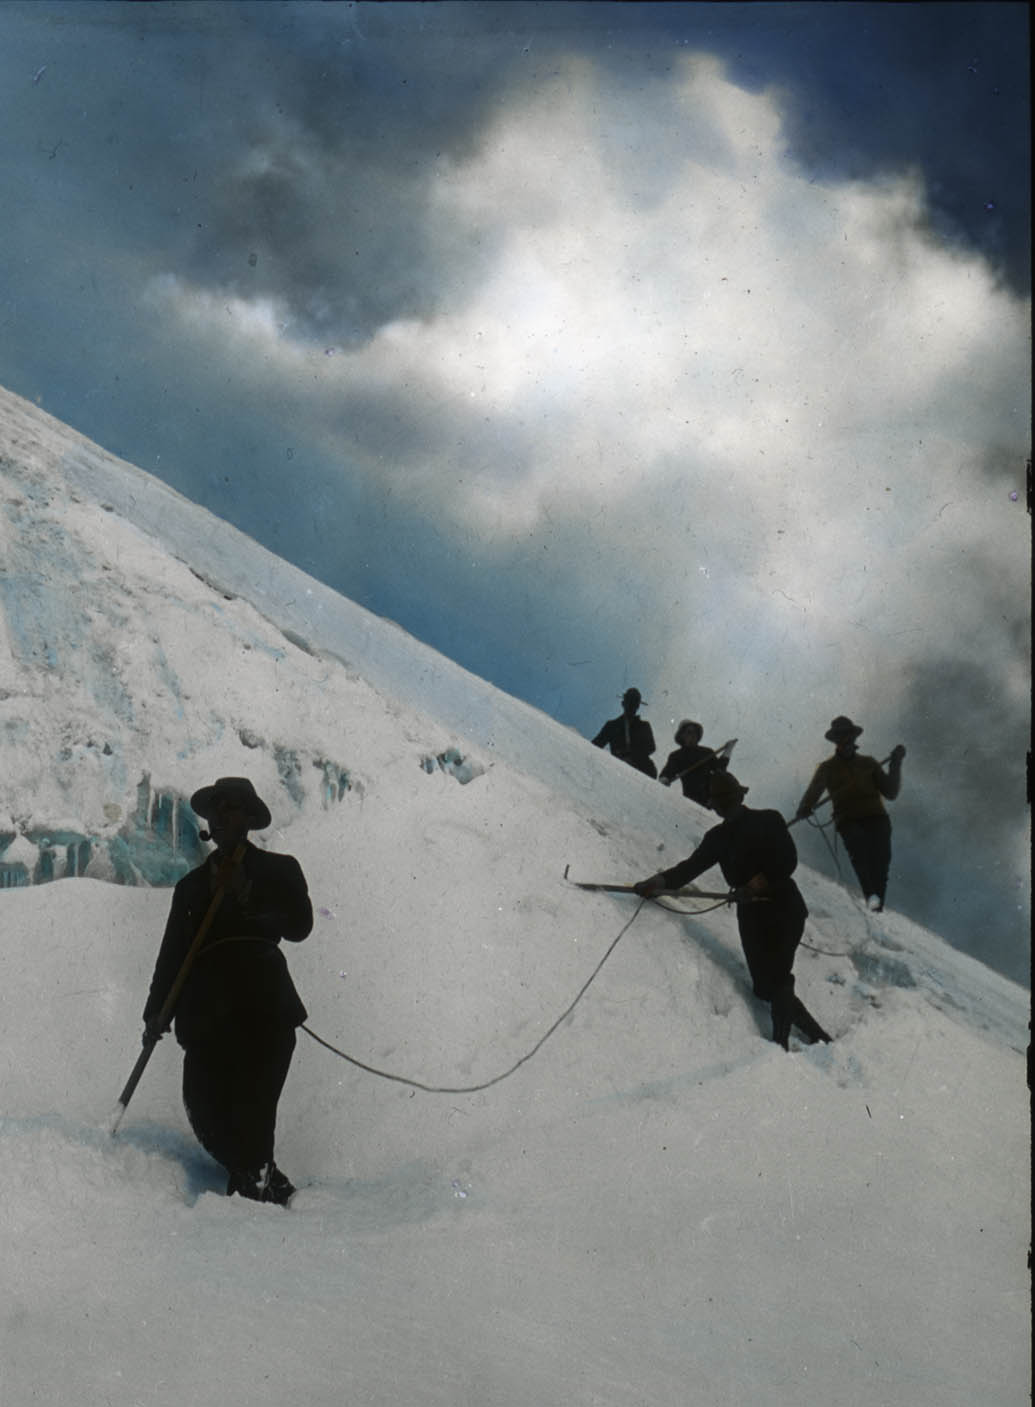 A climber anchoring himself with his ice axe - This photo is from our lantern slide collection